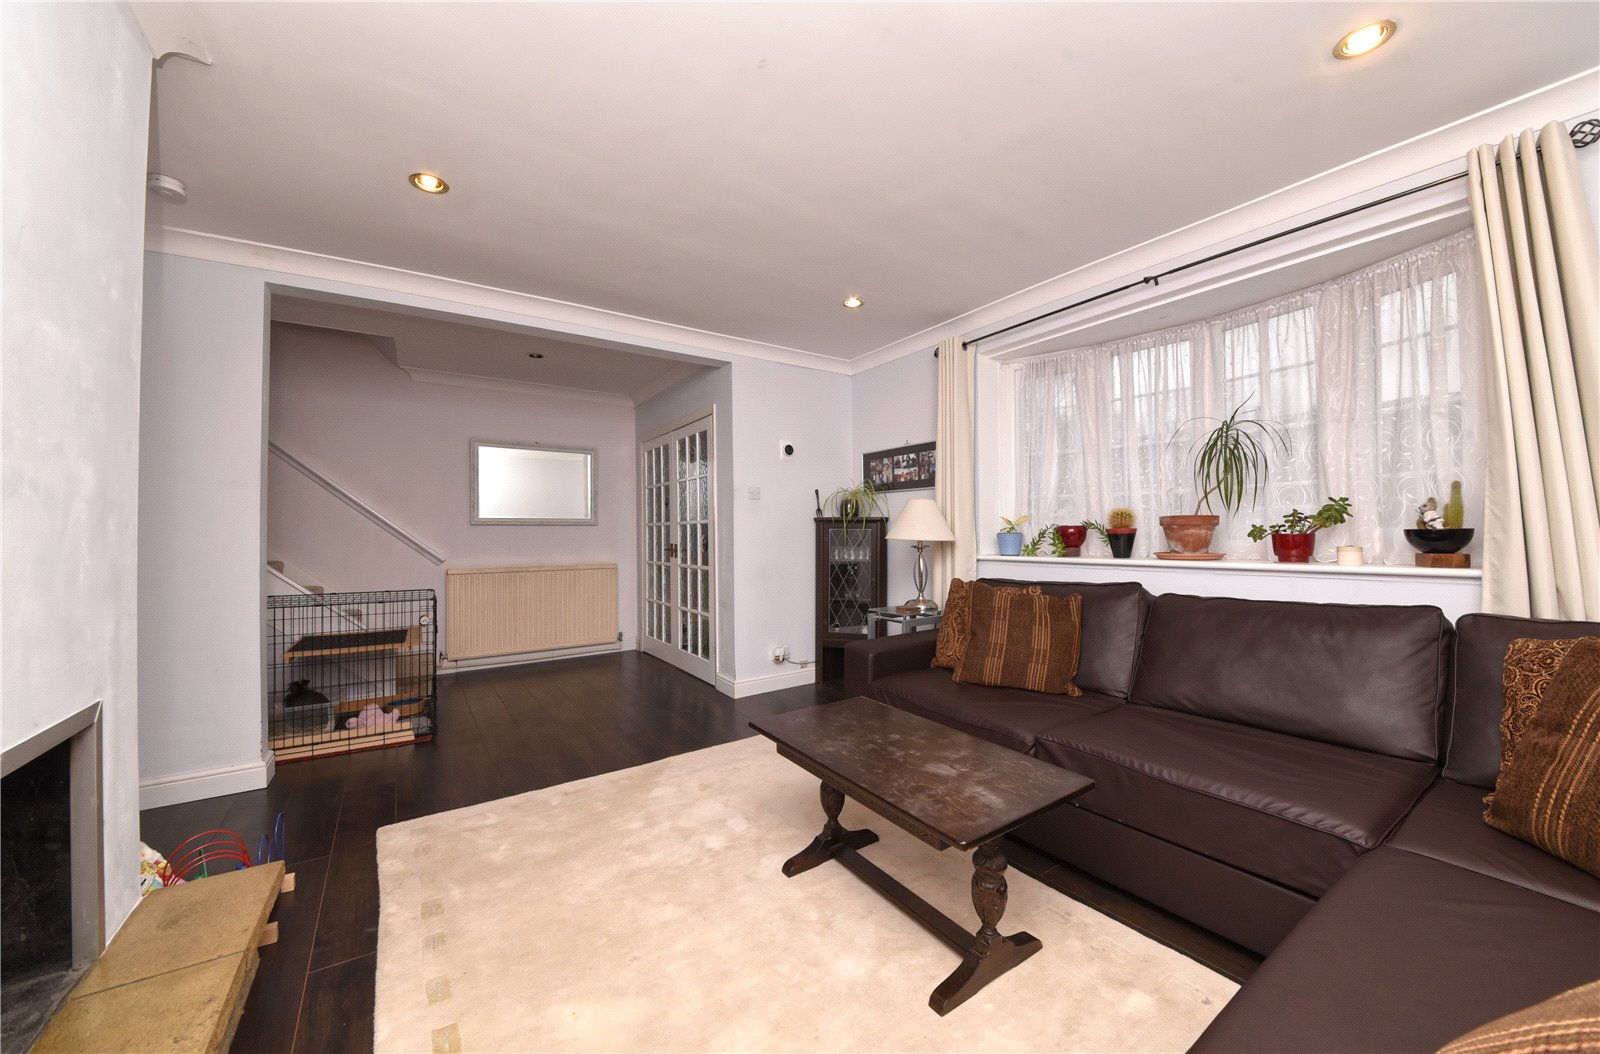 3 bed house for sale in Edgware, HA8 8XT  - Property Image 5